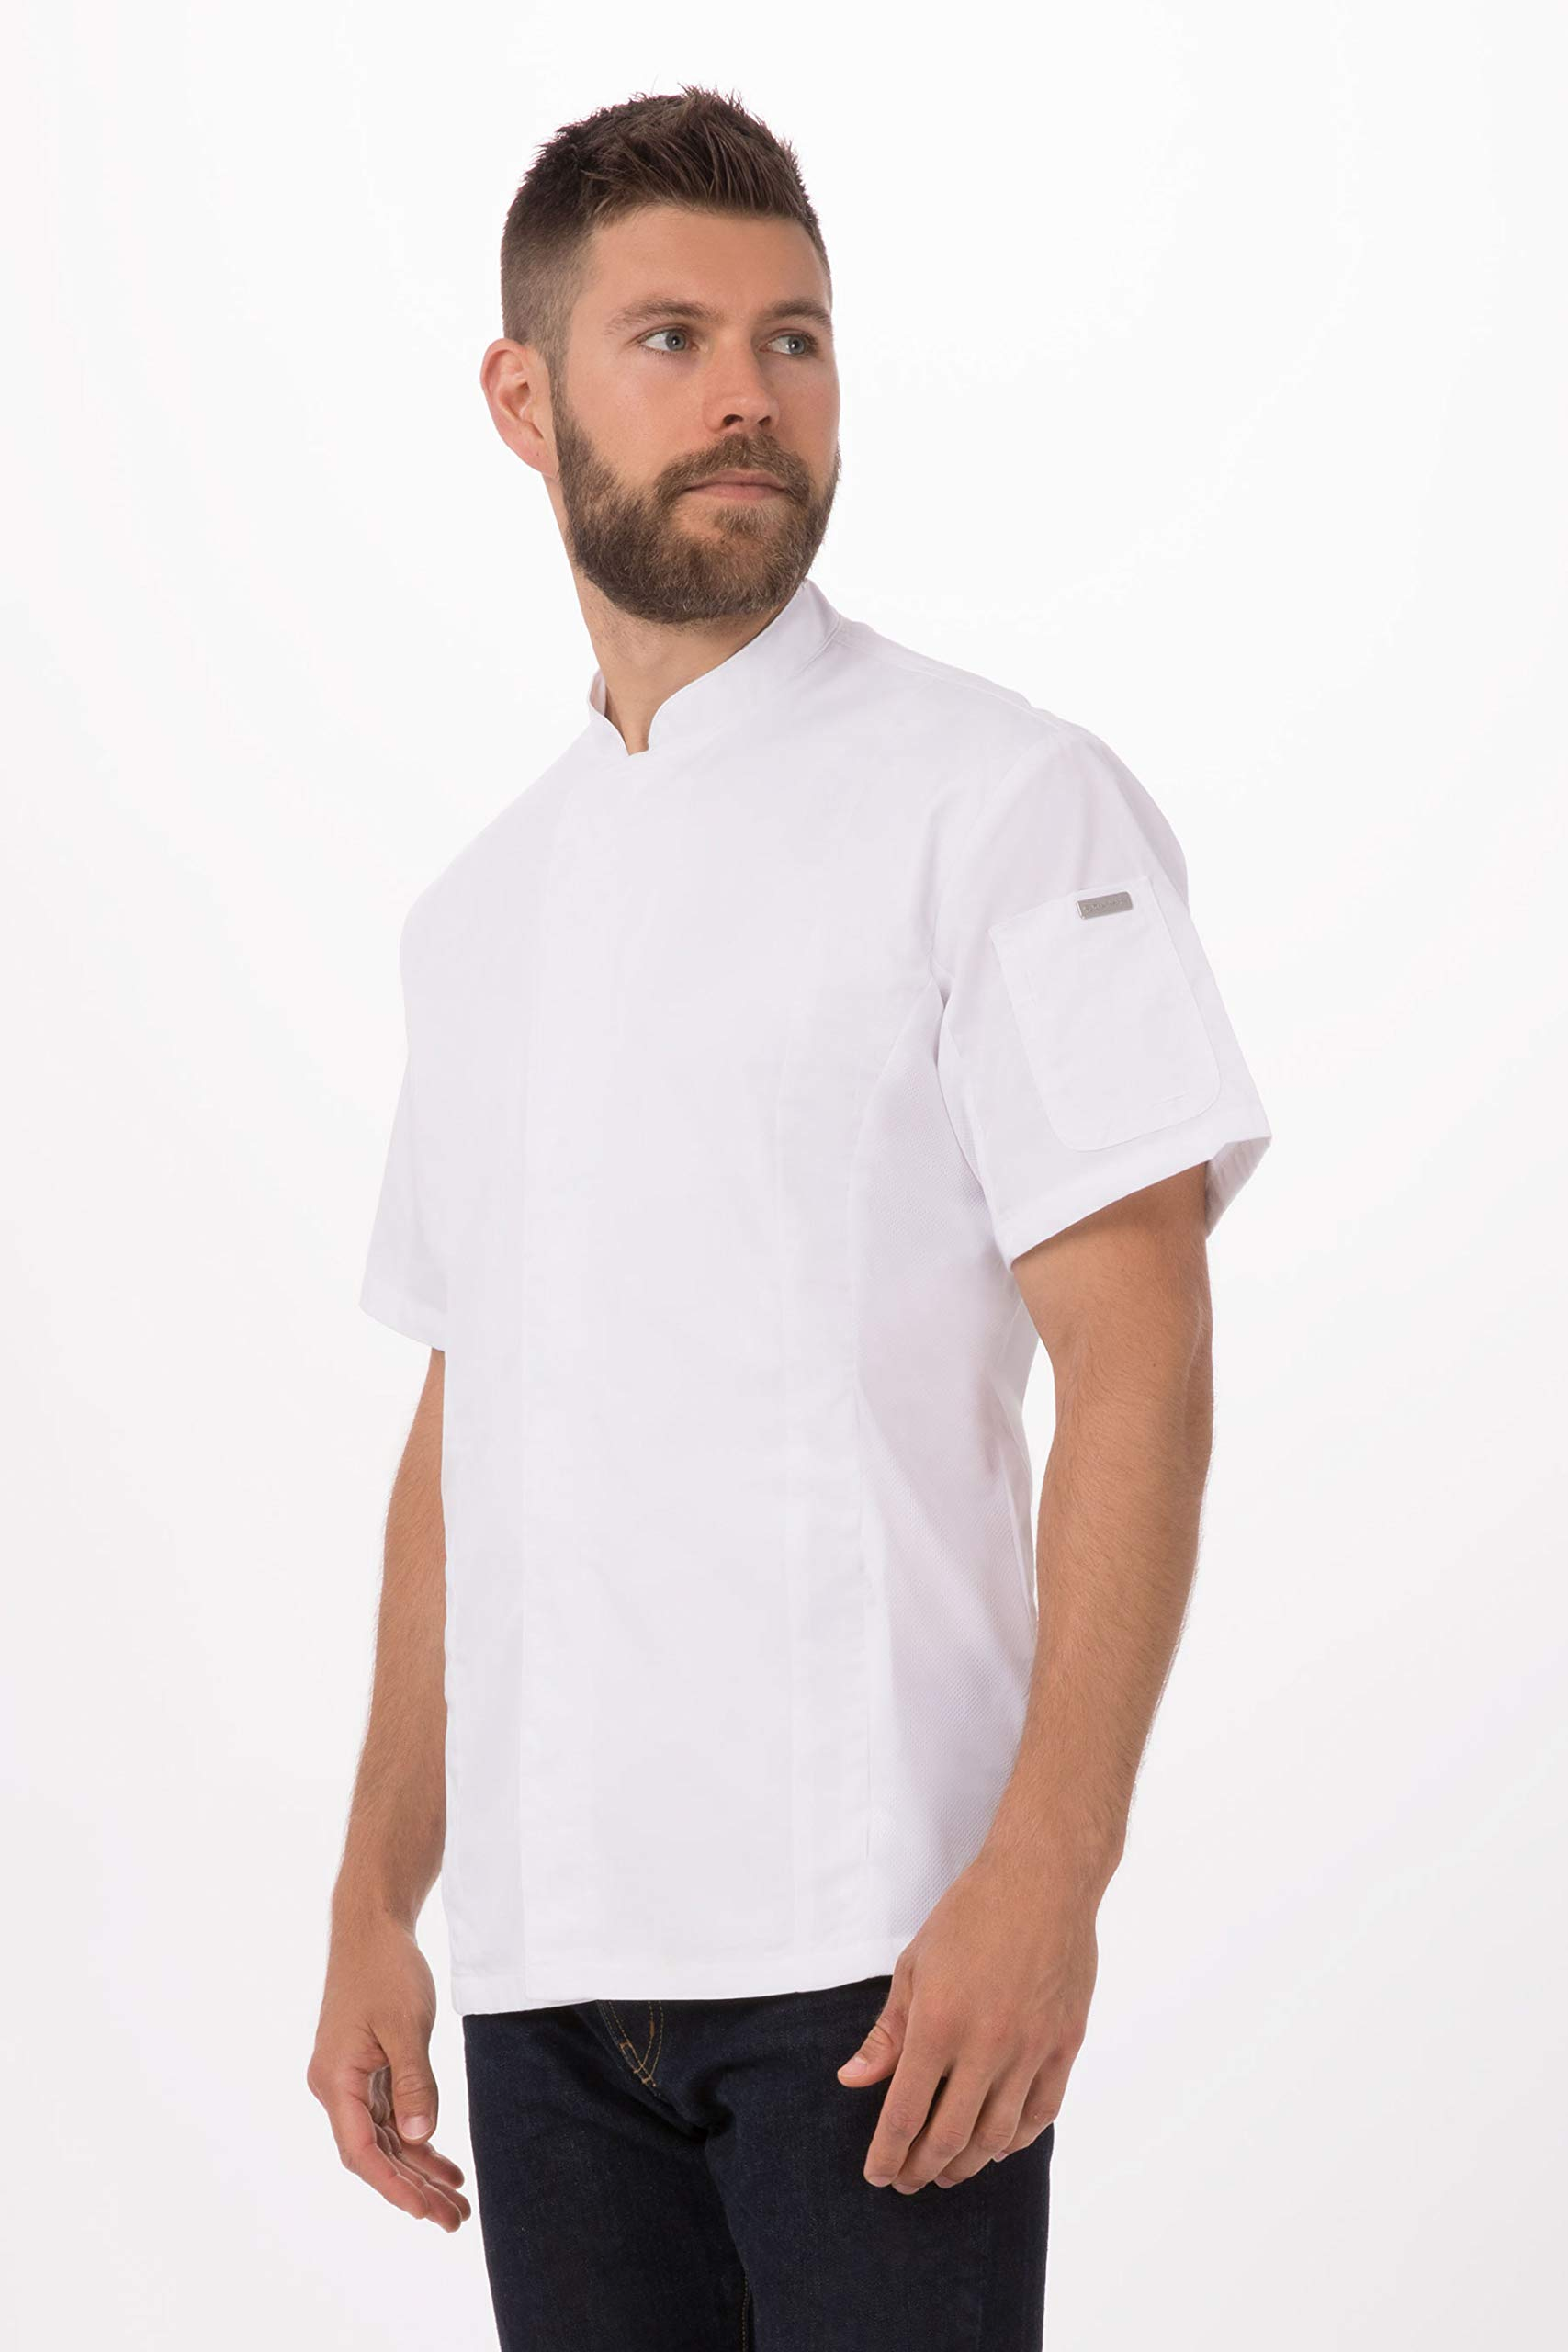 Chef Works Men's Bristol Signature Series Chef Coat, White, X-Large by Chef Works